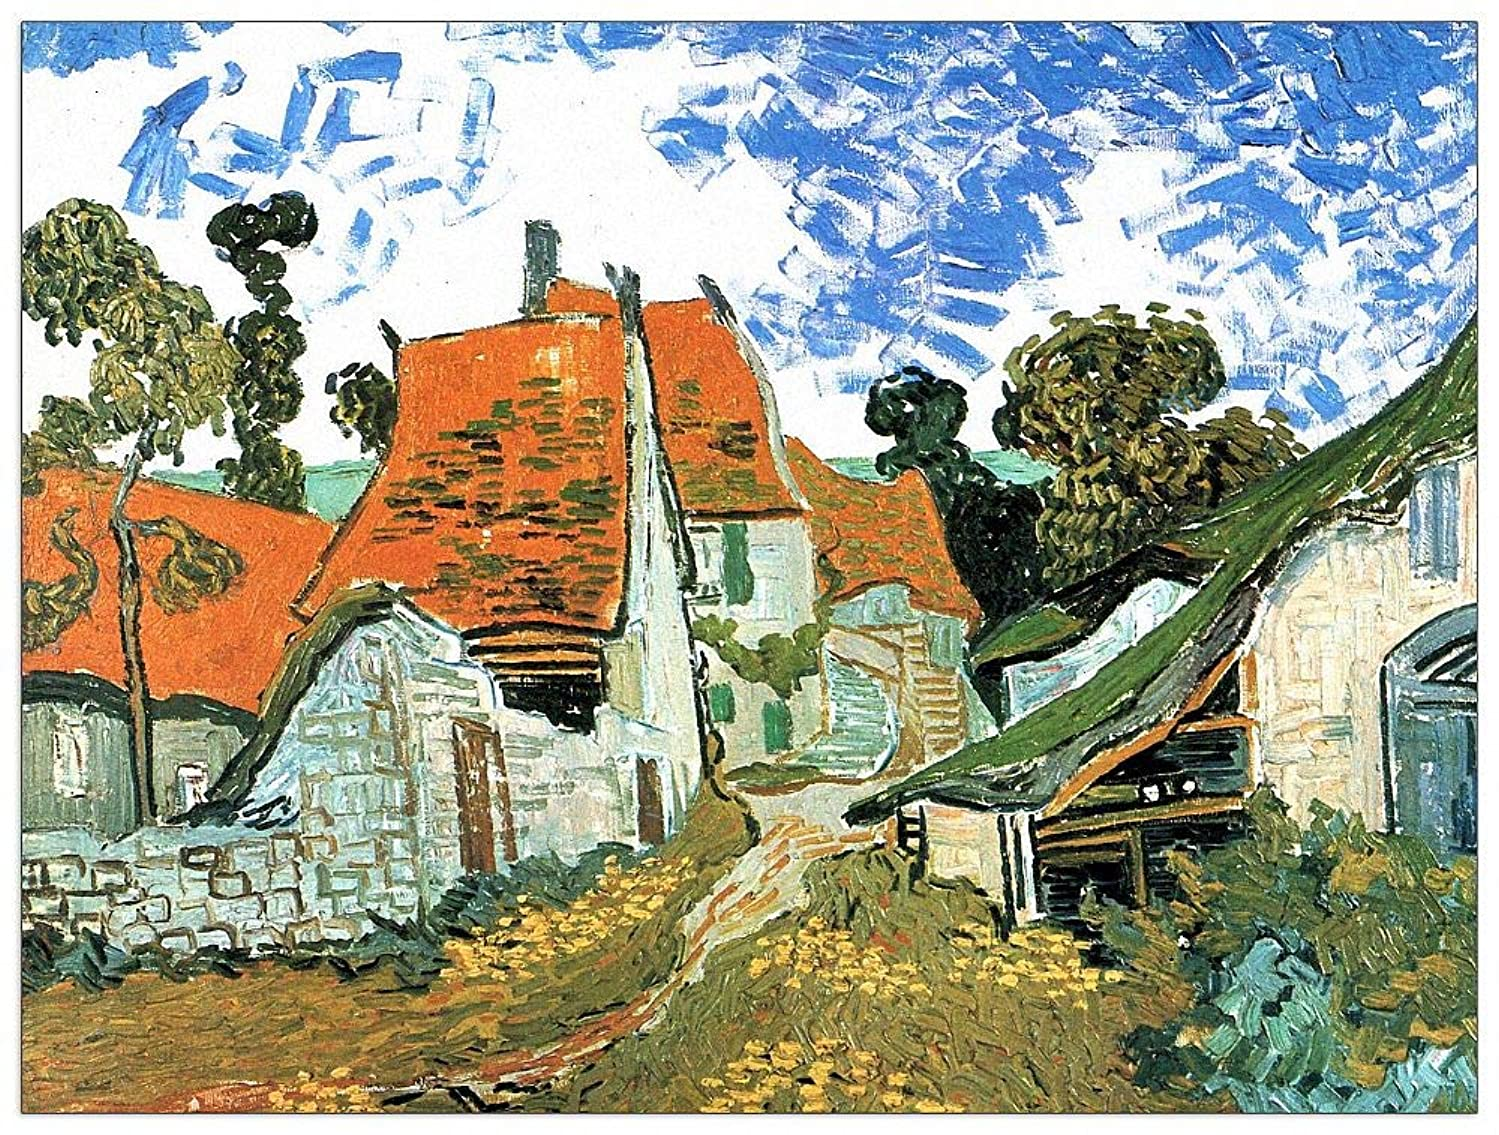 ArtPlaza TW91092 Van Gogh Vincent - Houses in Auvers Decorative Panel 35.5x27.5 Inch Multicolored